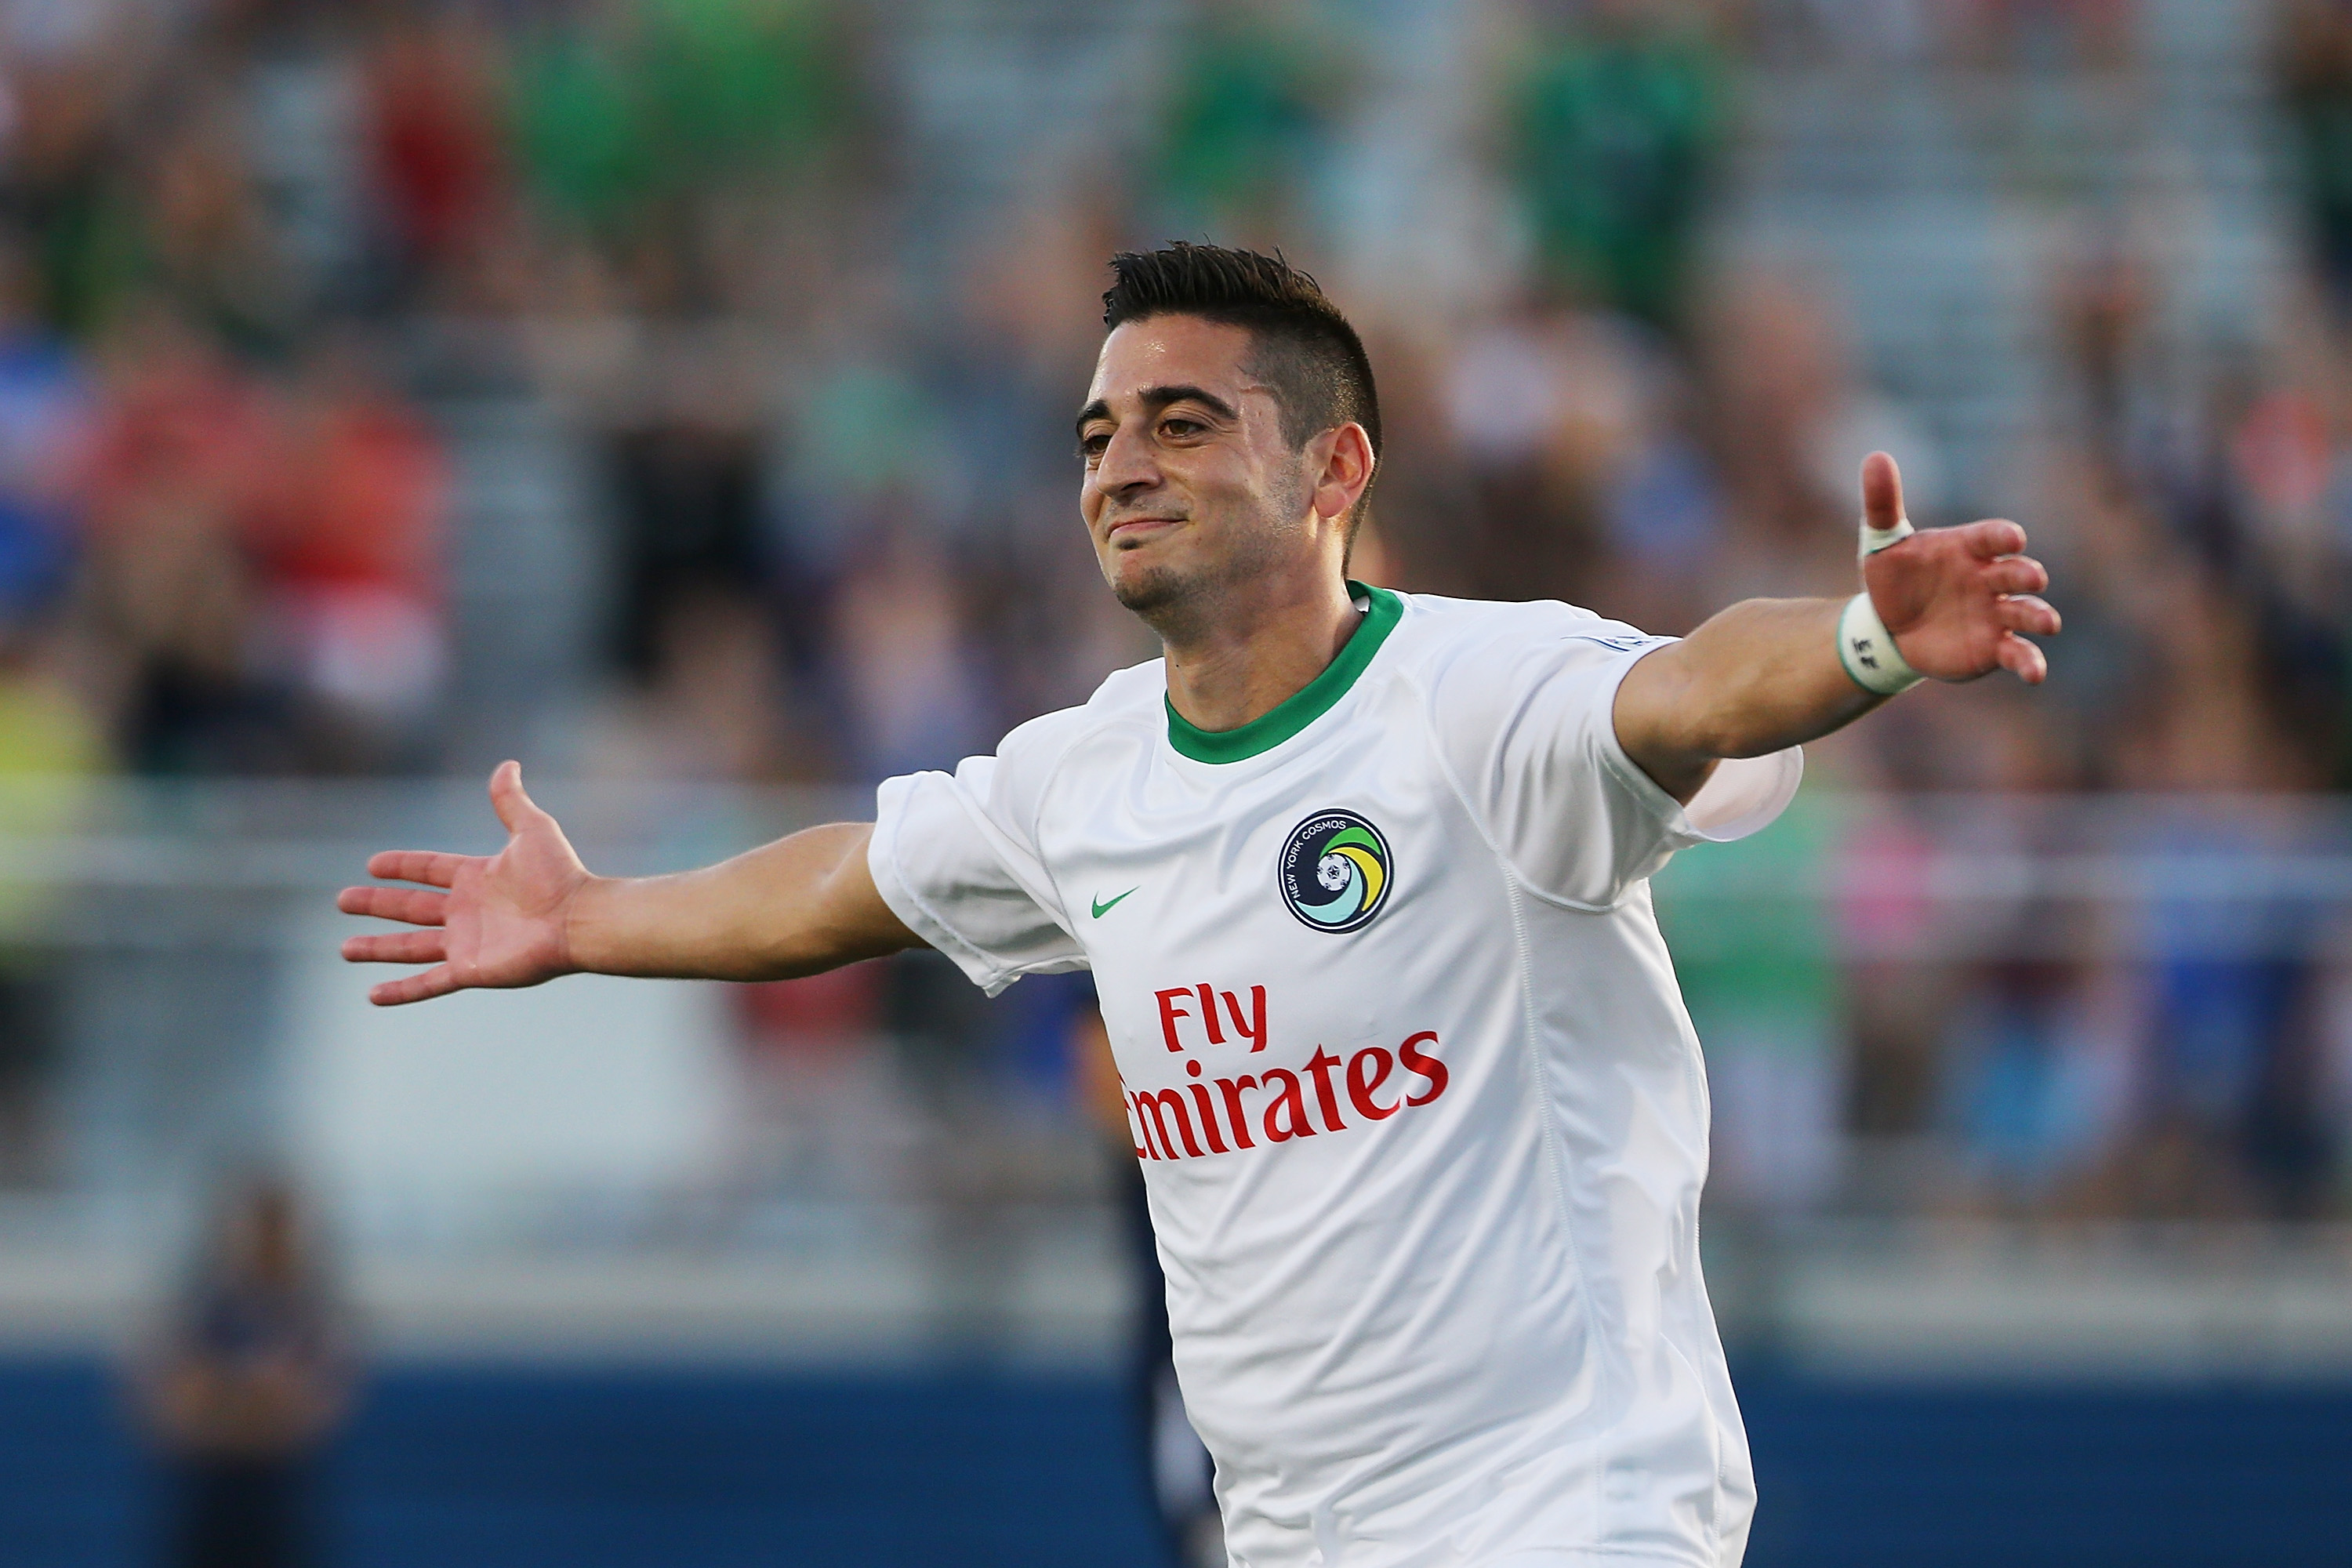 Photo: New York Cosmos